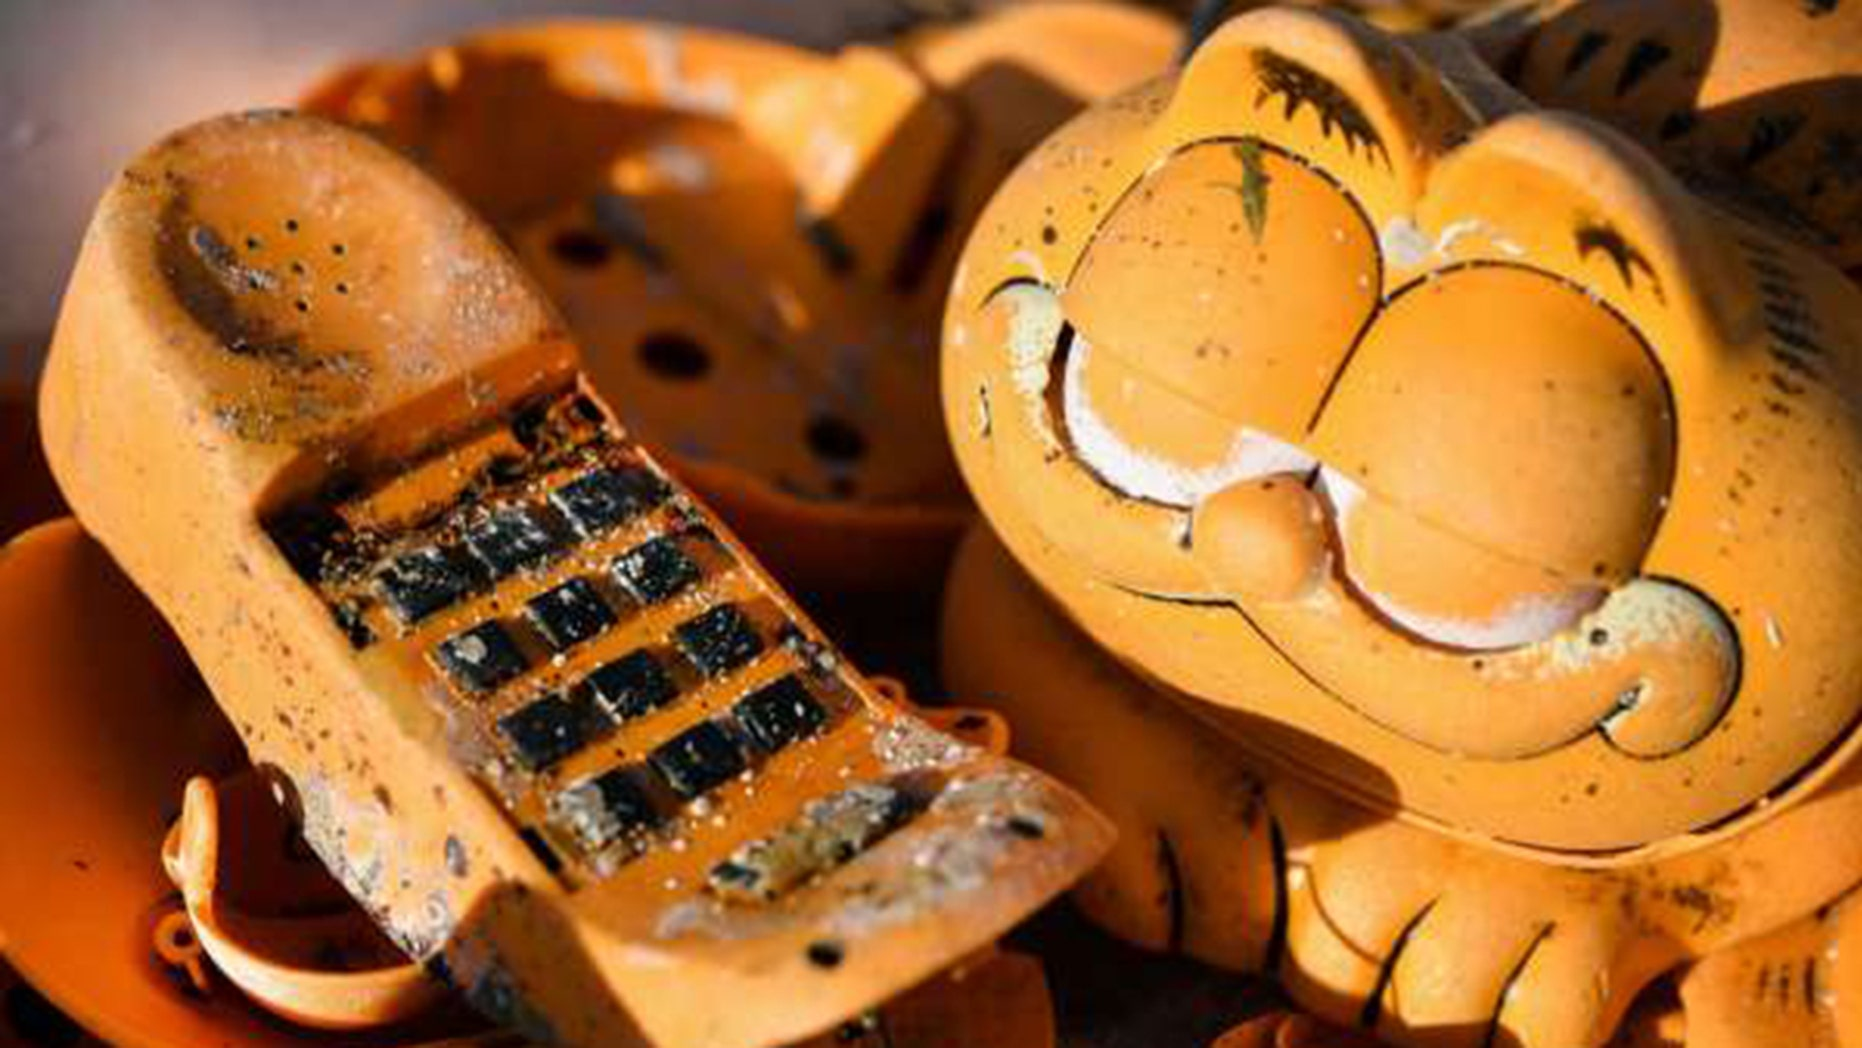 The Mystery of Plastic Garfield Telephones Washing Up on French Beaches